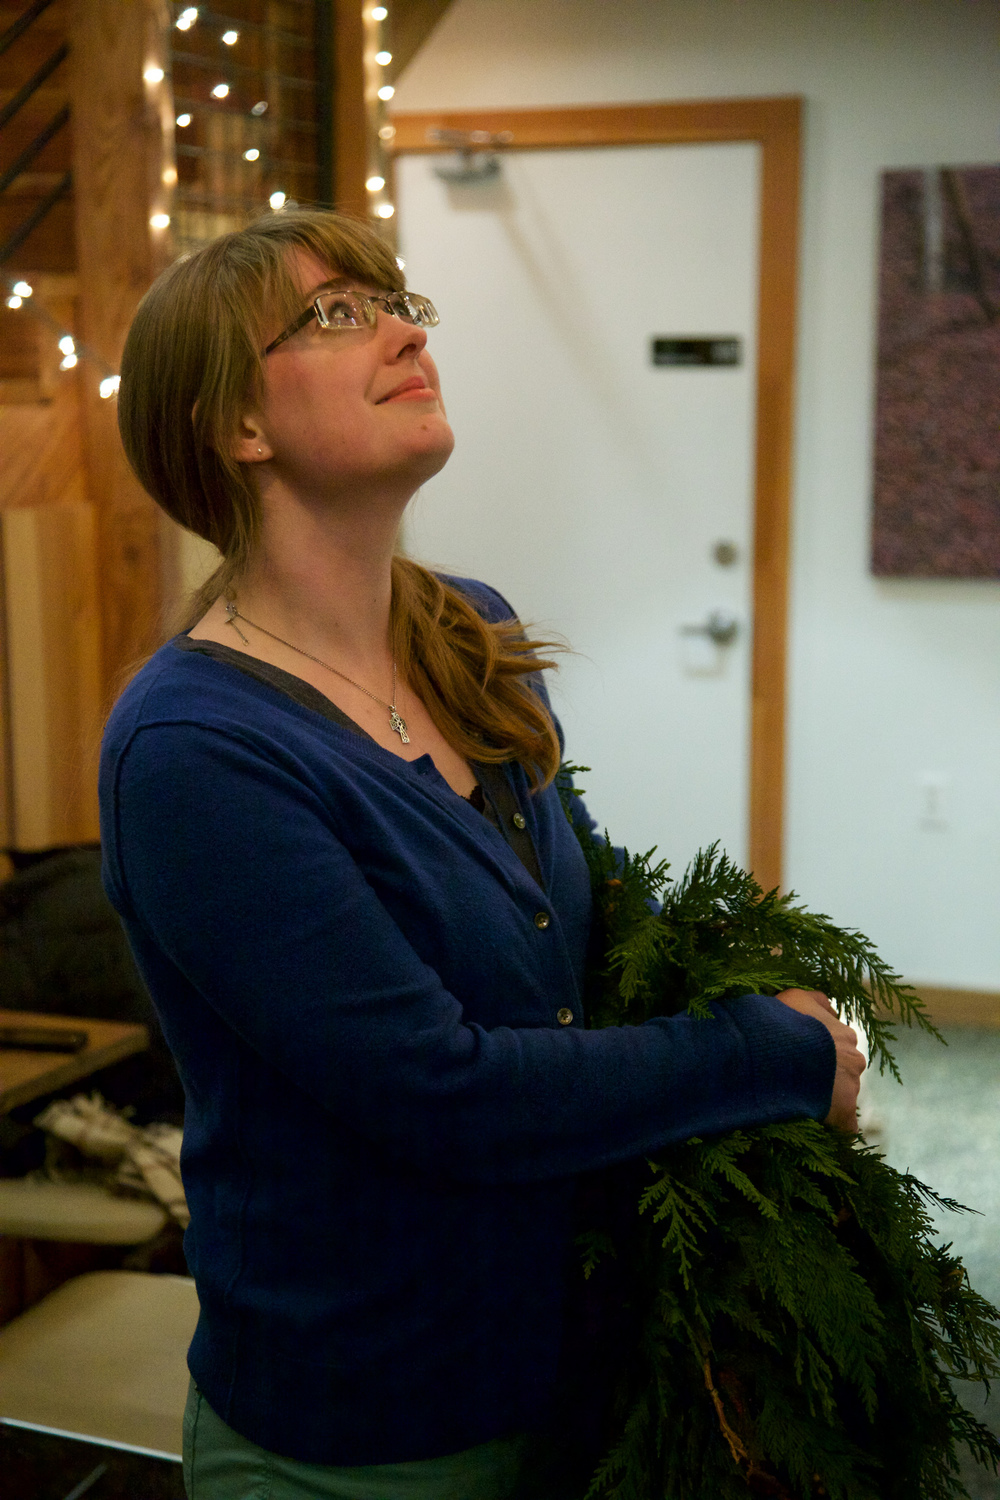 Behind the Scenes: Winter Decorations